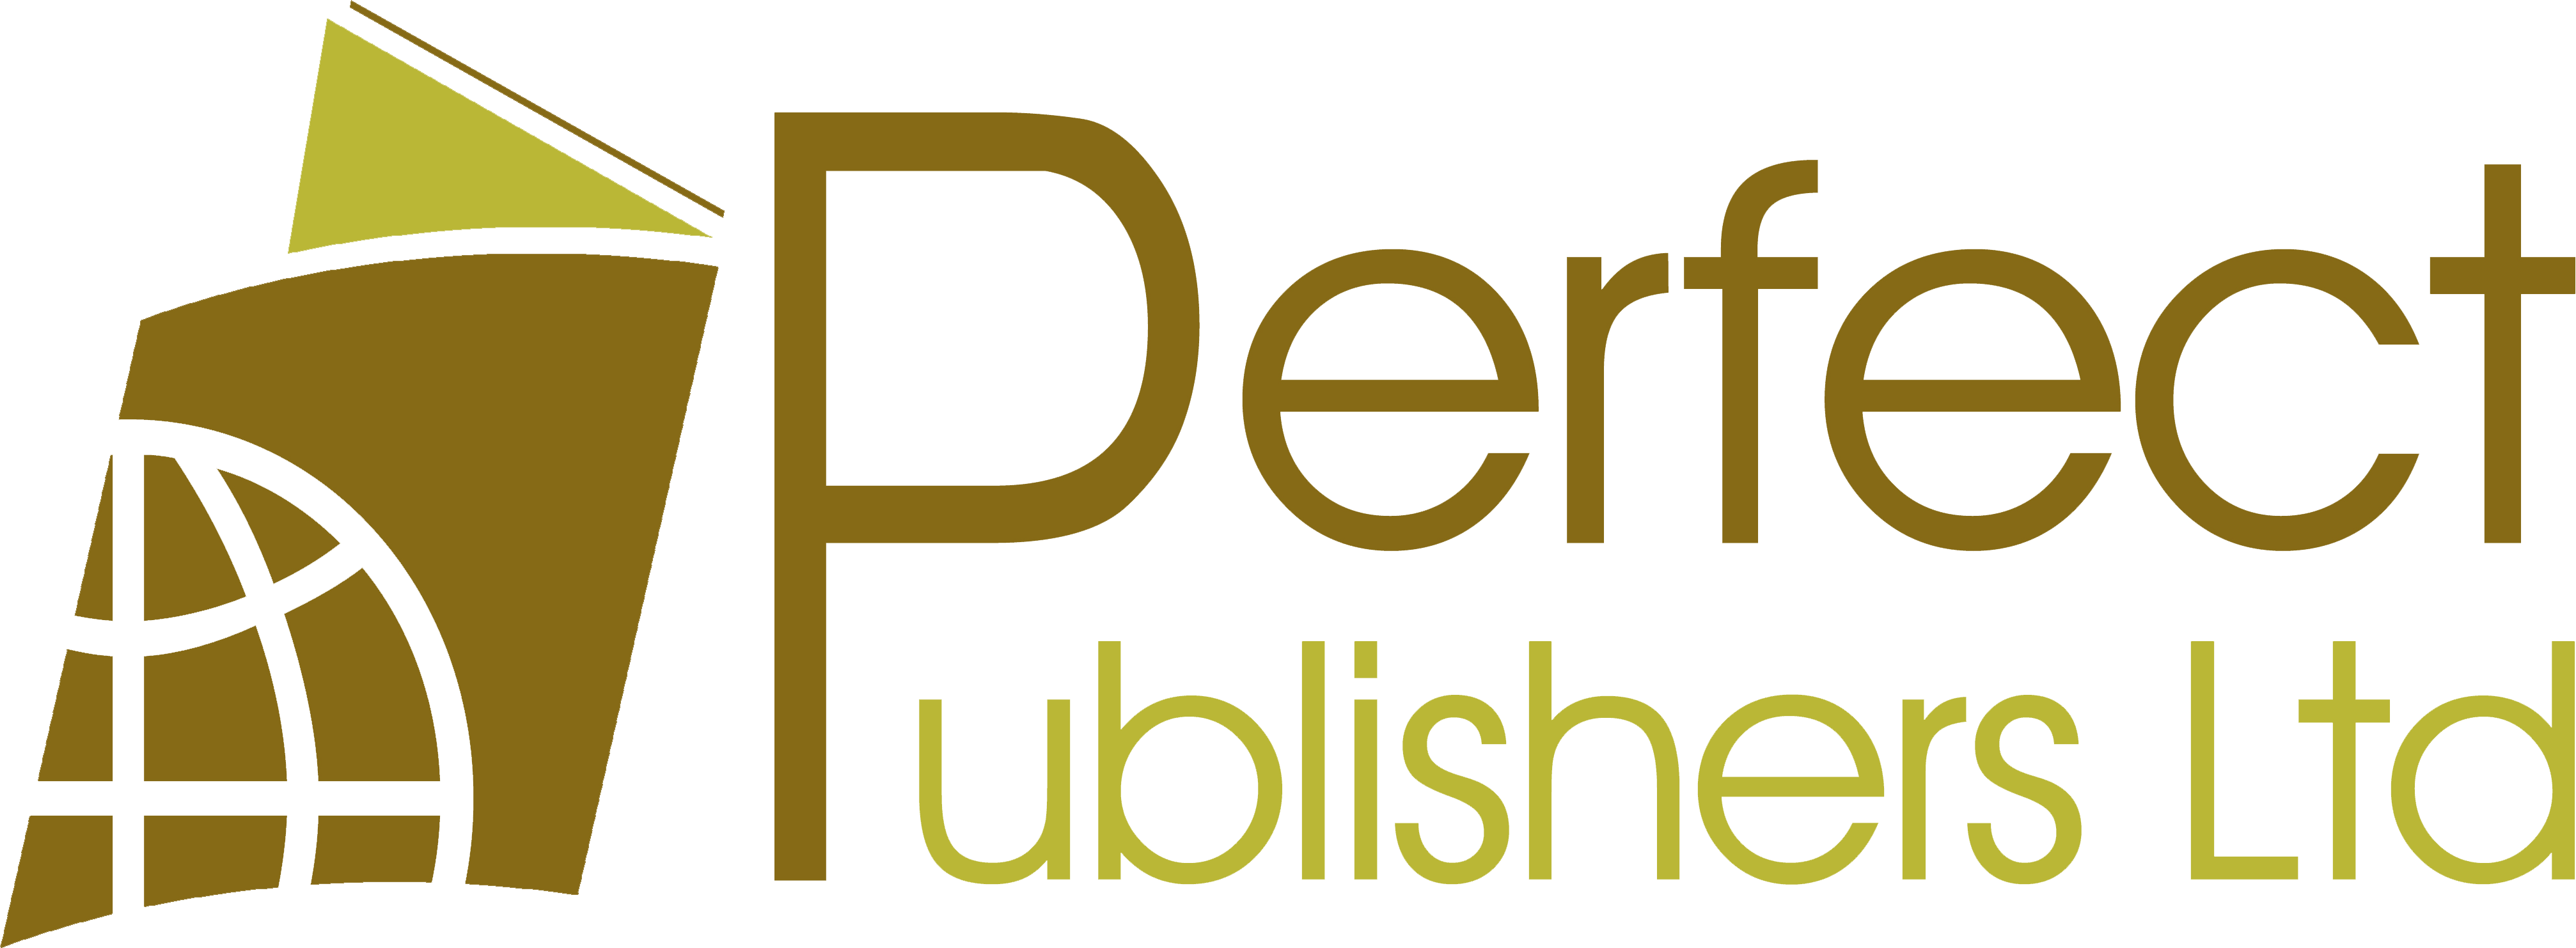 Perfect Publishers Ltd